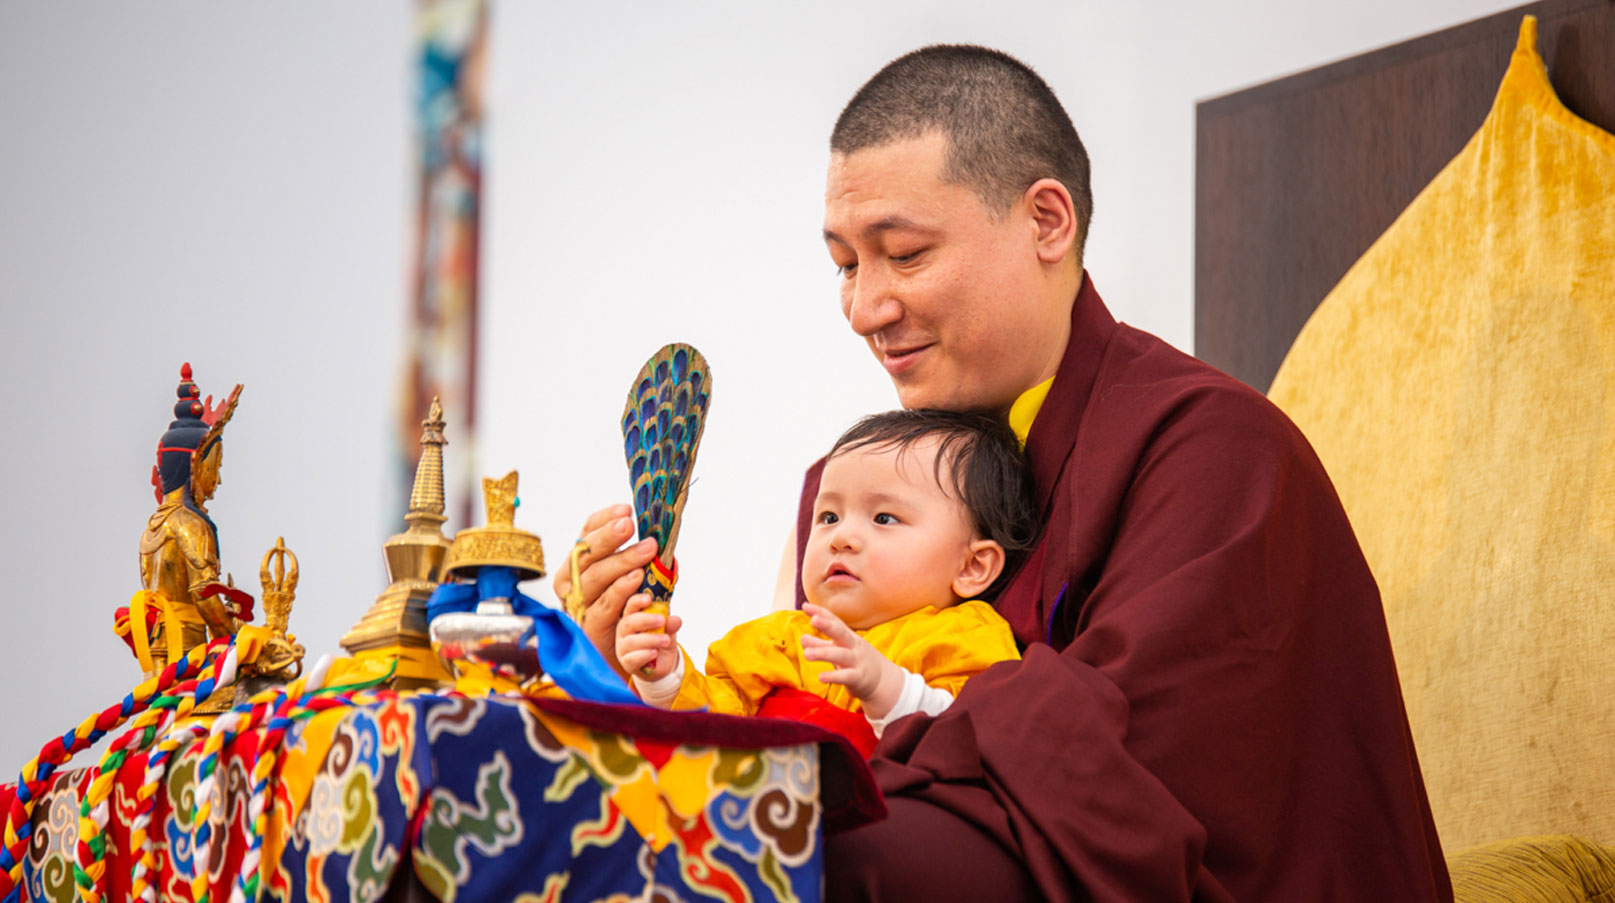 Karmapa and Thugseyla arrive at the Europe Center in Immenstadt